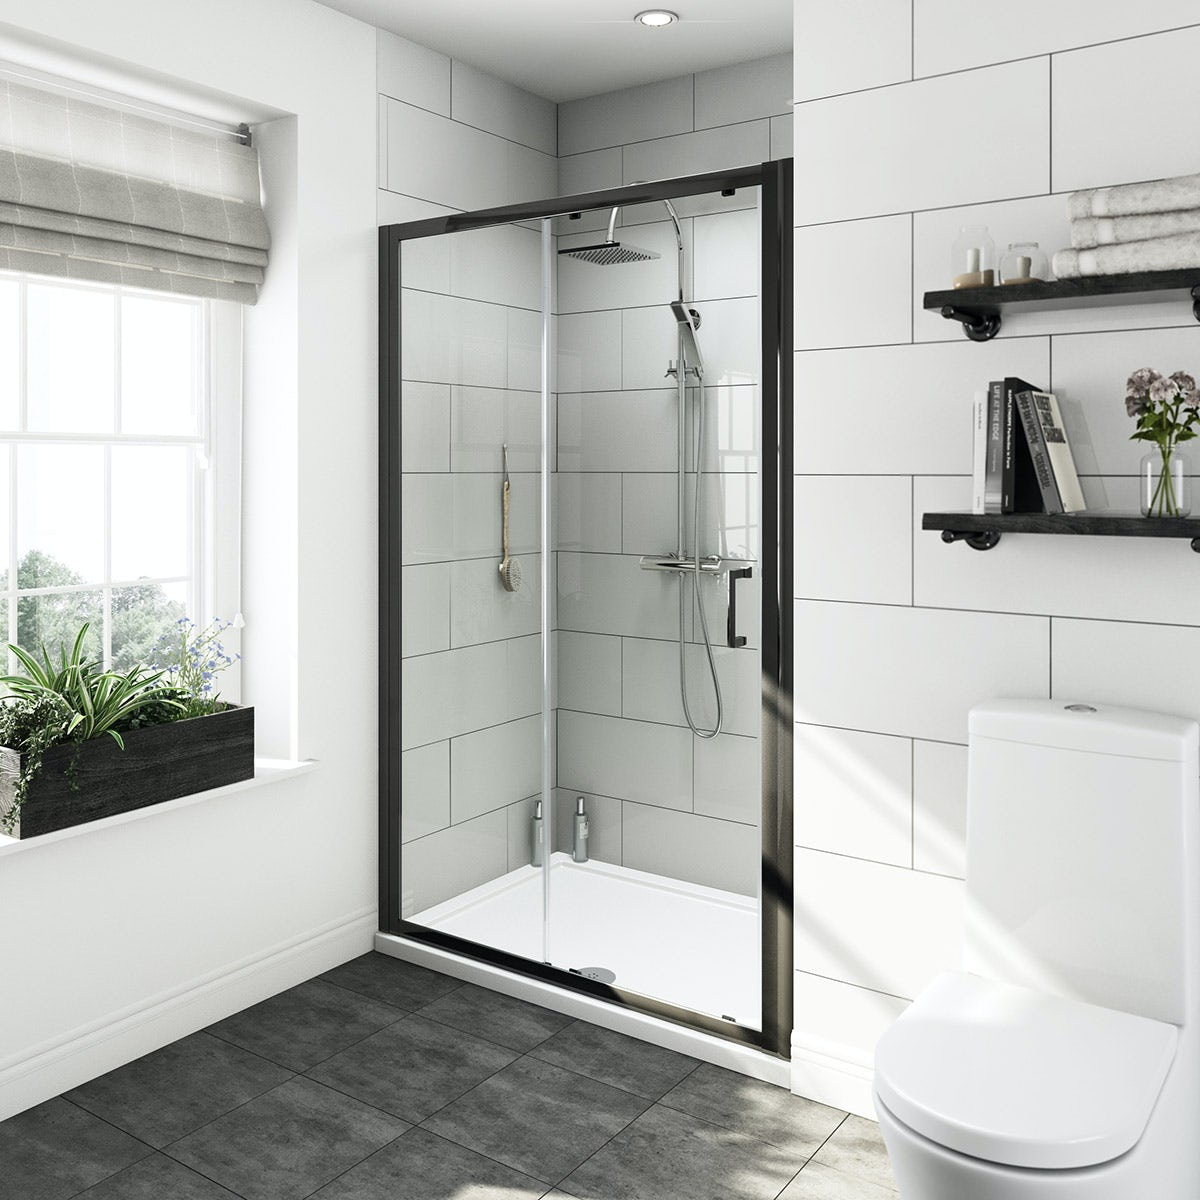 Mode Carter Ensuite Suite With 6mm Shower Door Tap And